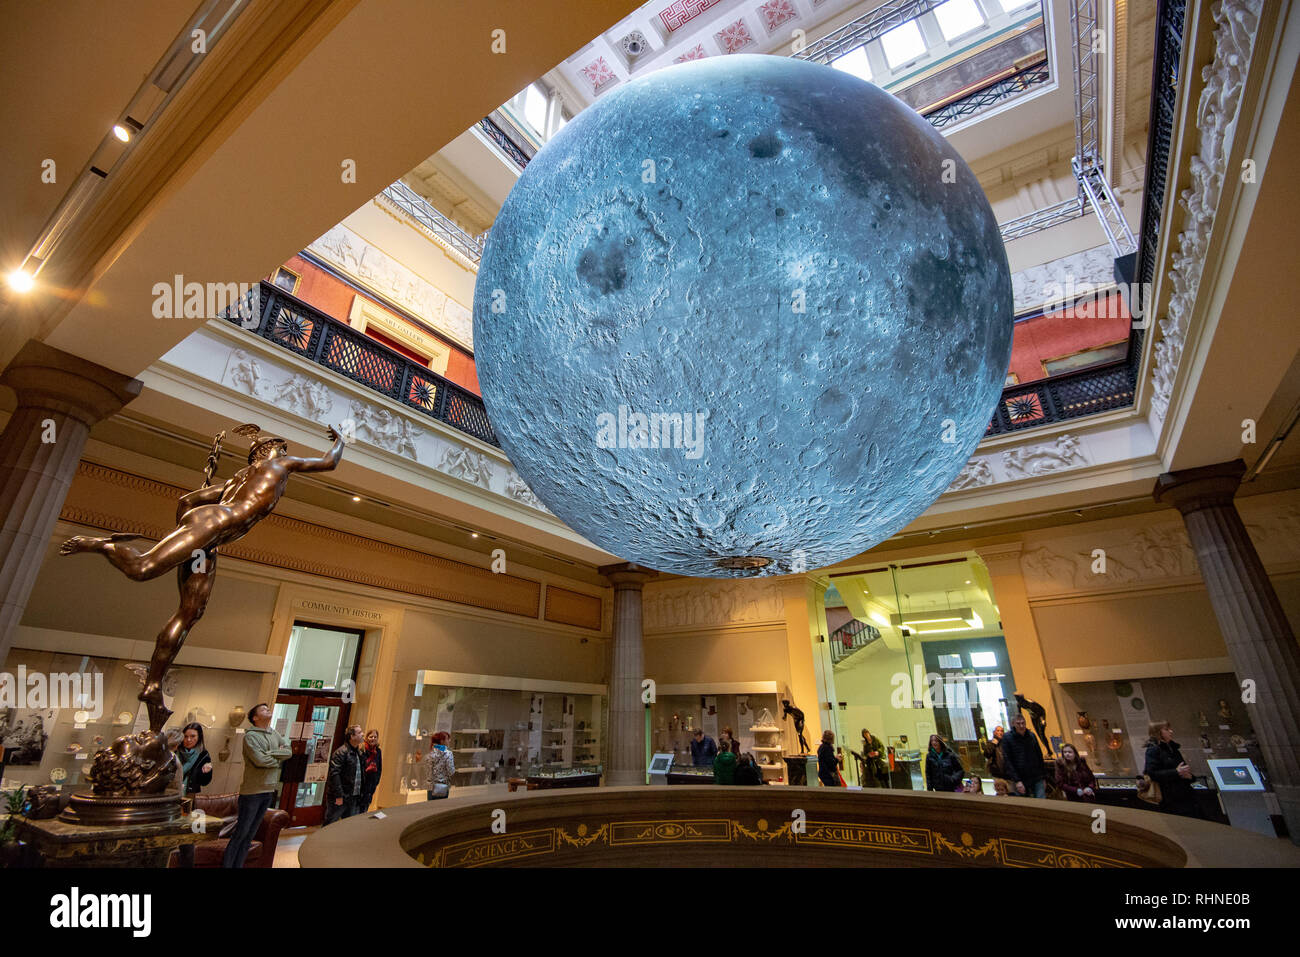 Preston, UK. 03rd Feb, 2019. The Flying Mercury statue seems to salute The Museum of the Moon, an artwork by Luke Jerram, at the Harris Museum and Art Gallery, Preston, Lancashire. The seven metres in diameter sphere will tour various exhibitions and festivals around the world. Credit: John Eveson/Alamy Live News - Stock Image